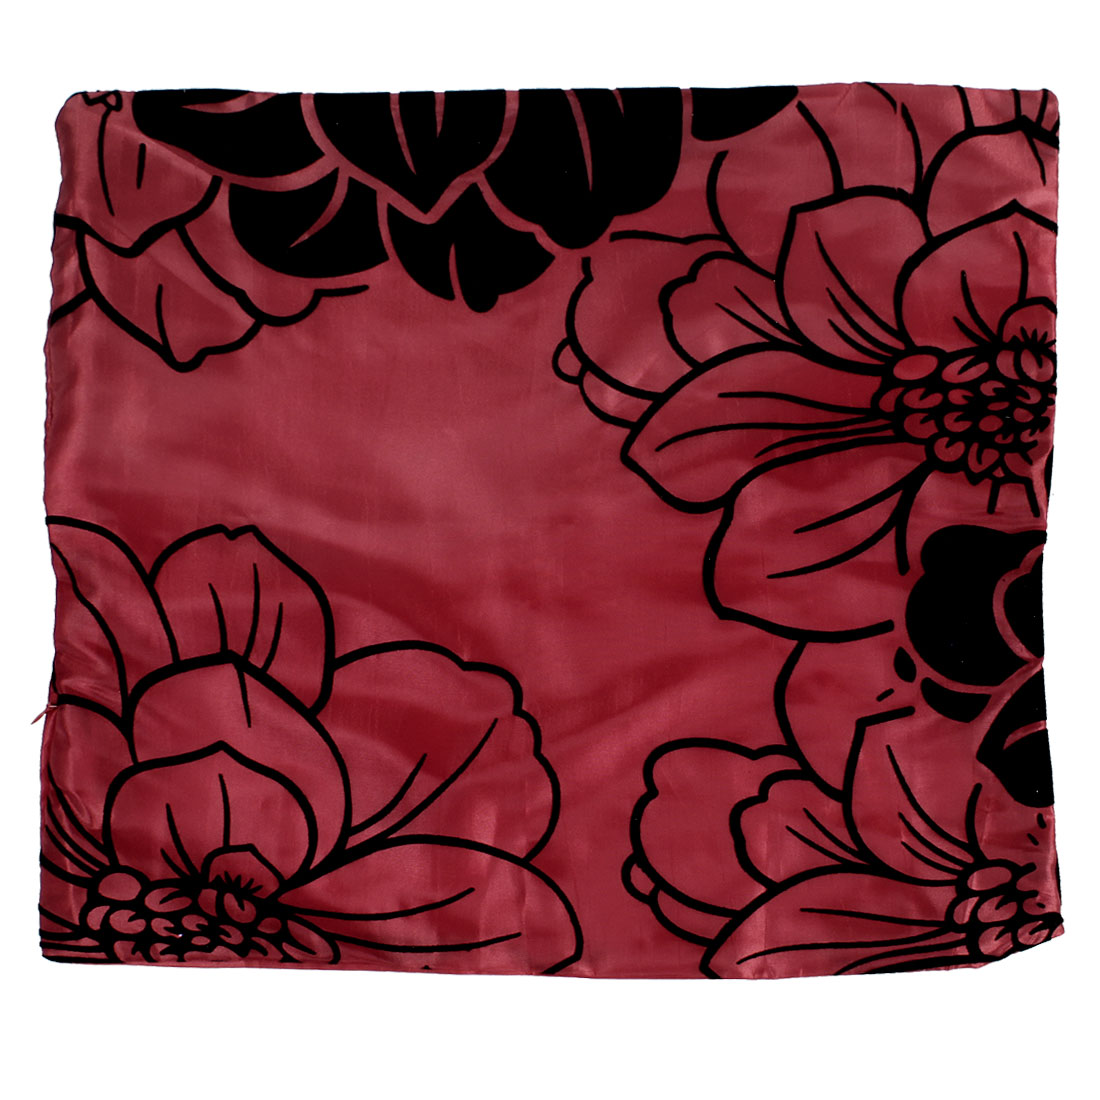 Home Black Fannel Flower Print Nylon Pillow Cover Case Red